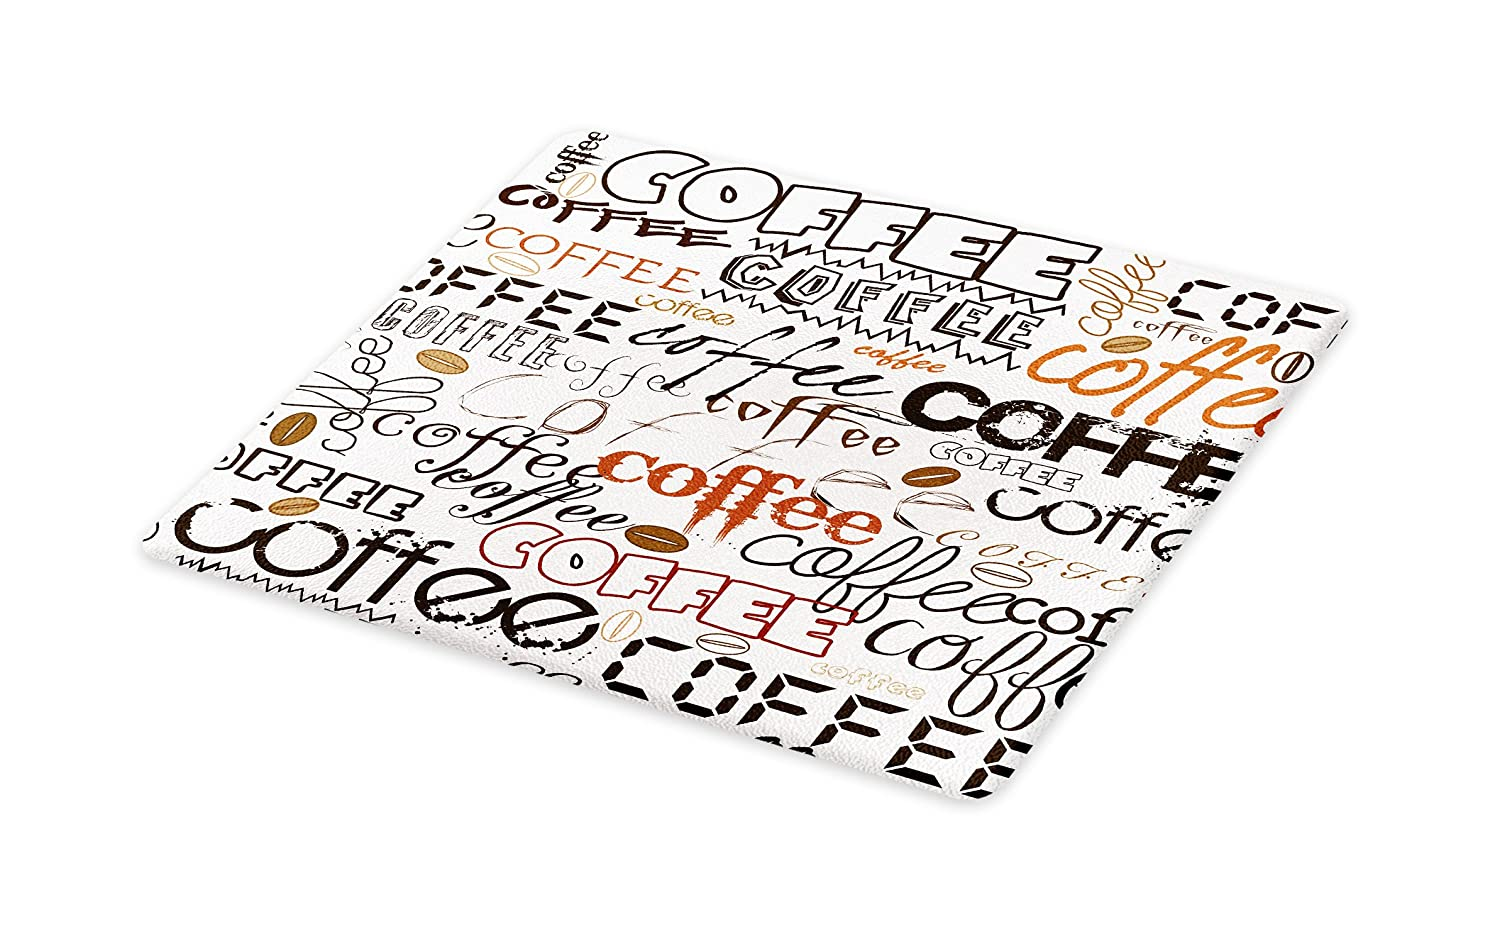 Lunarable Coffee Cutting Board, Coffee Letterings Morning Time Drink Aroma Traditional Typographic Stylized Print, Decorative Tempered Glass Cutting and Serving Board, Large Size, Black Brown